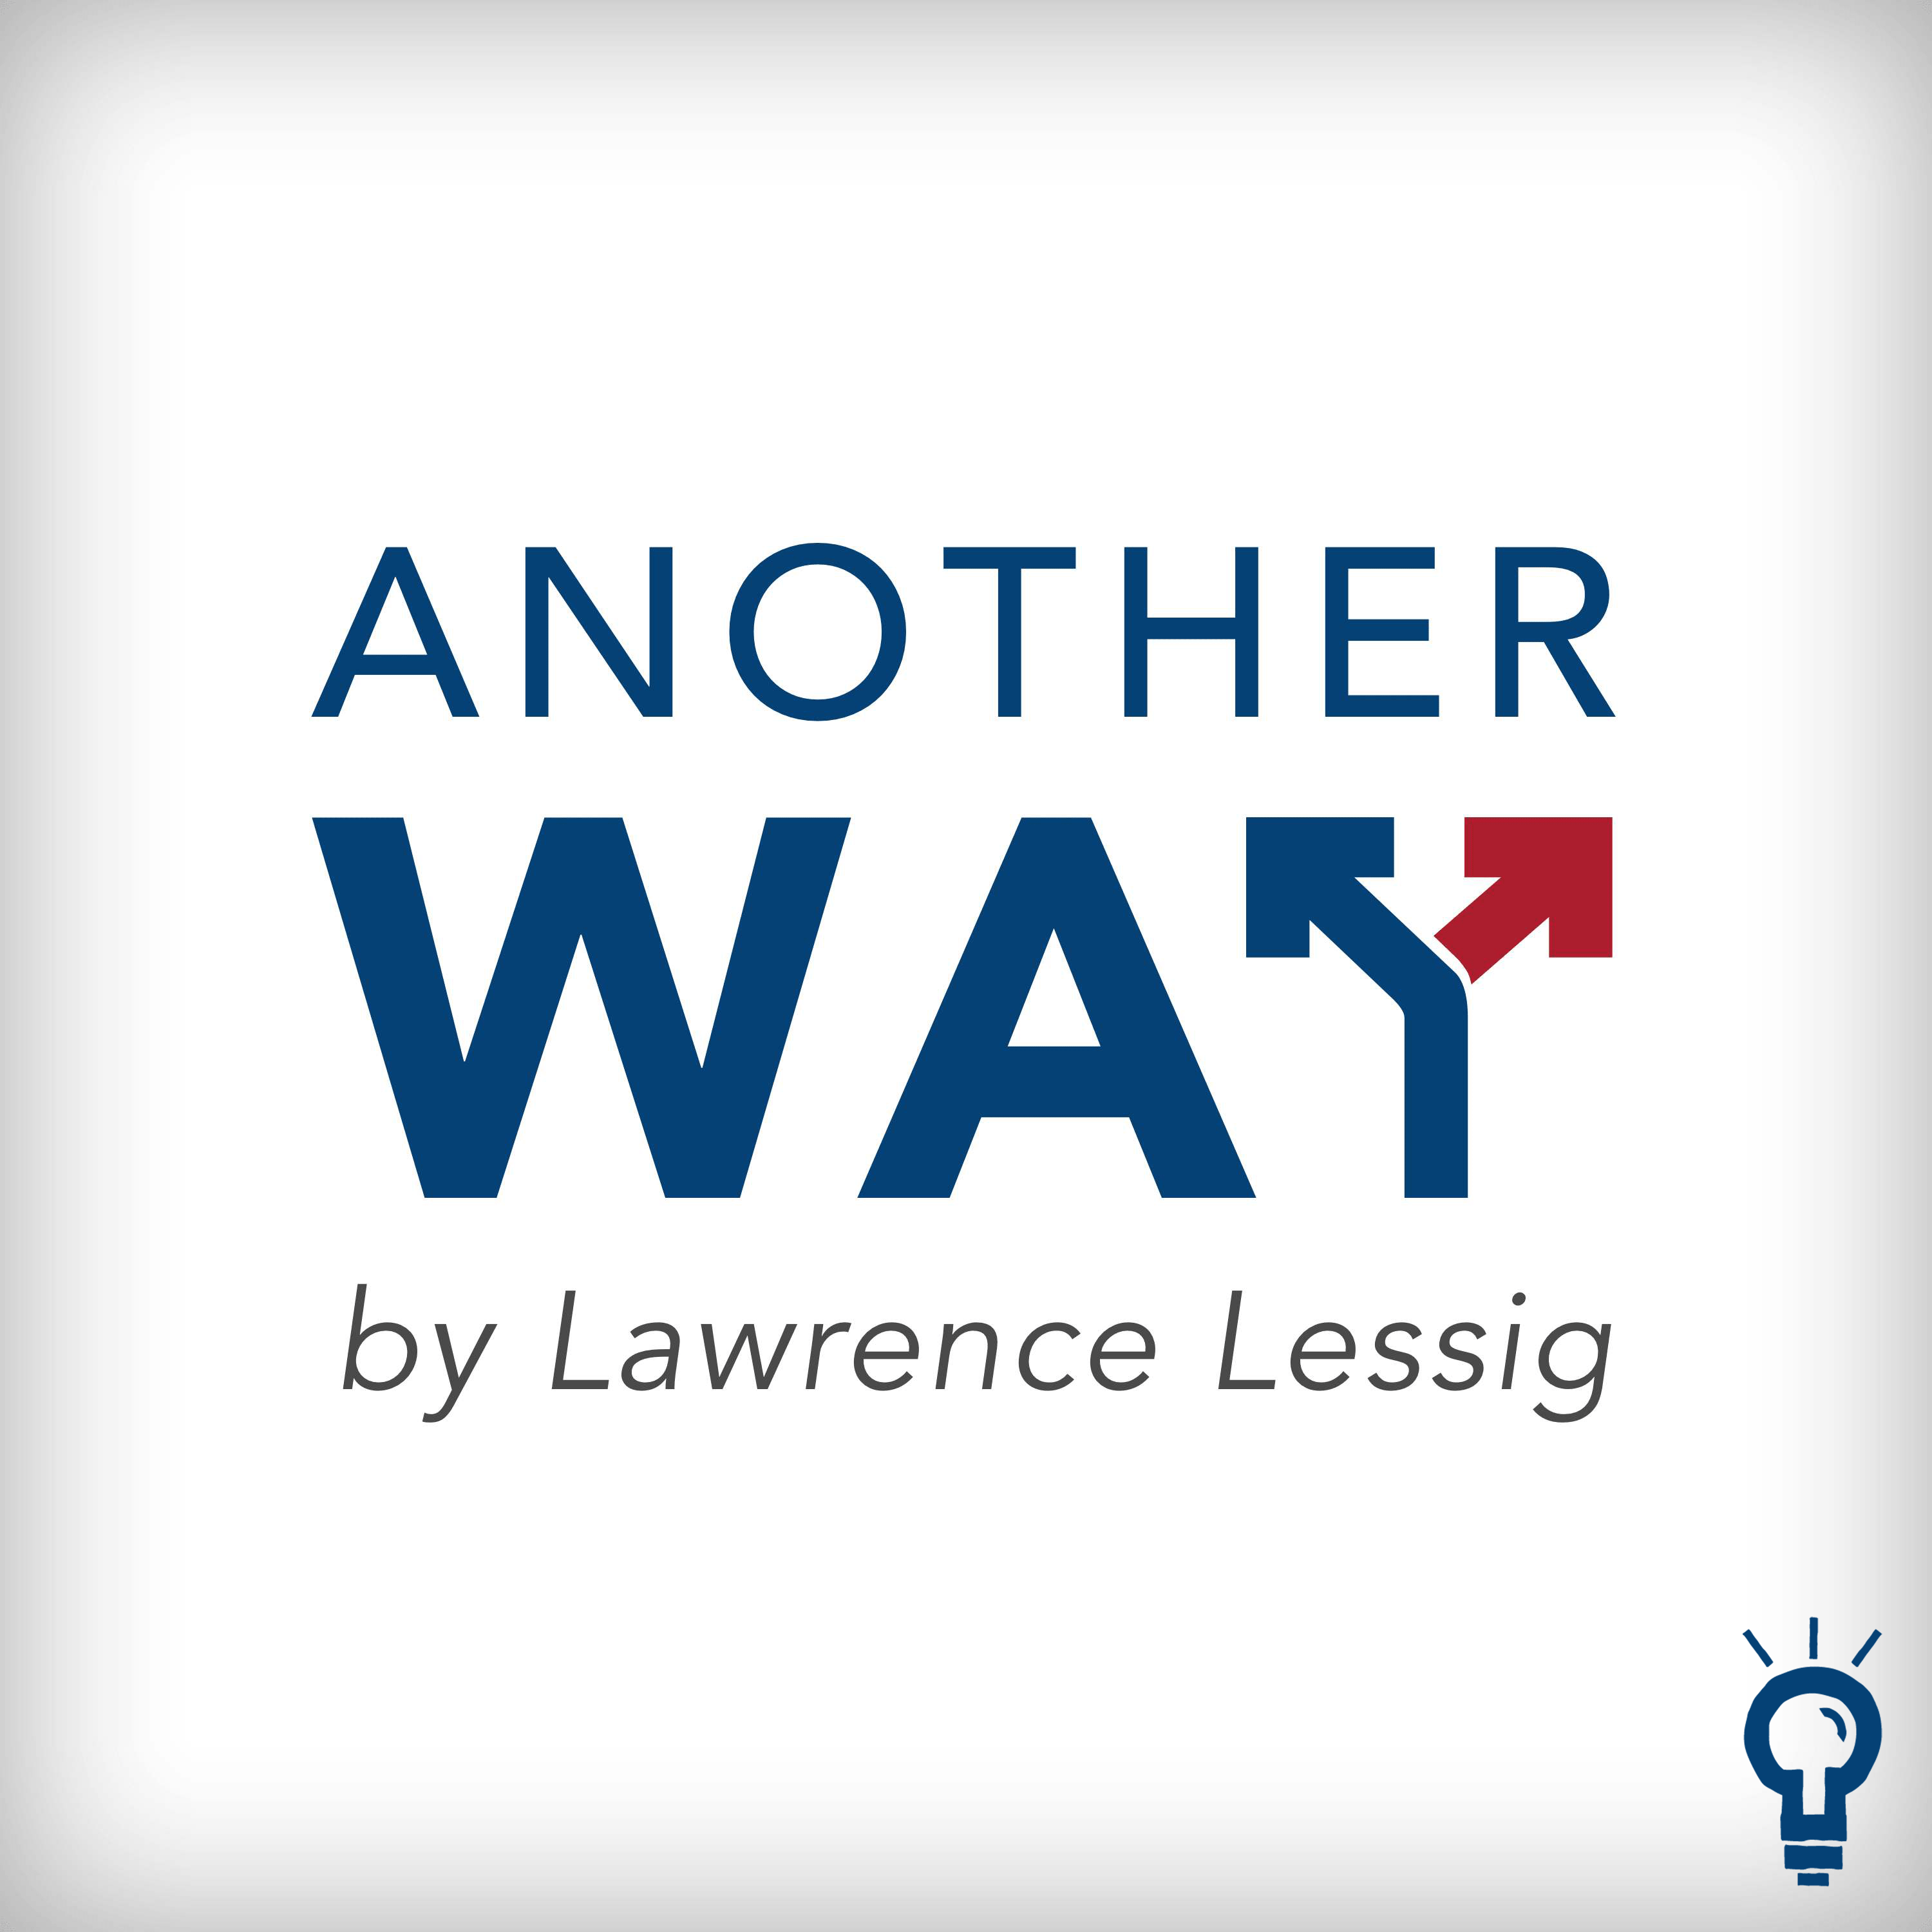 Another Way, by Lawrence Lessig